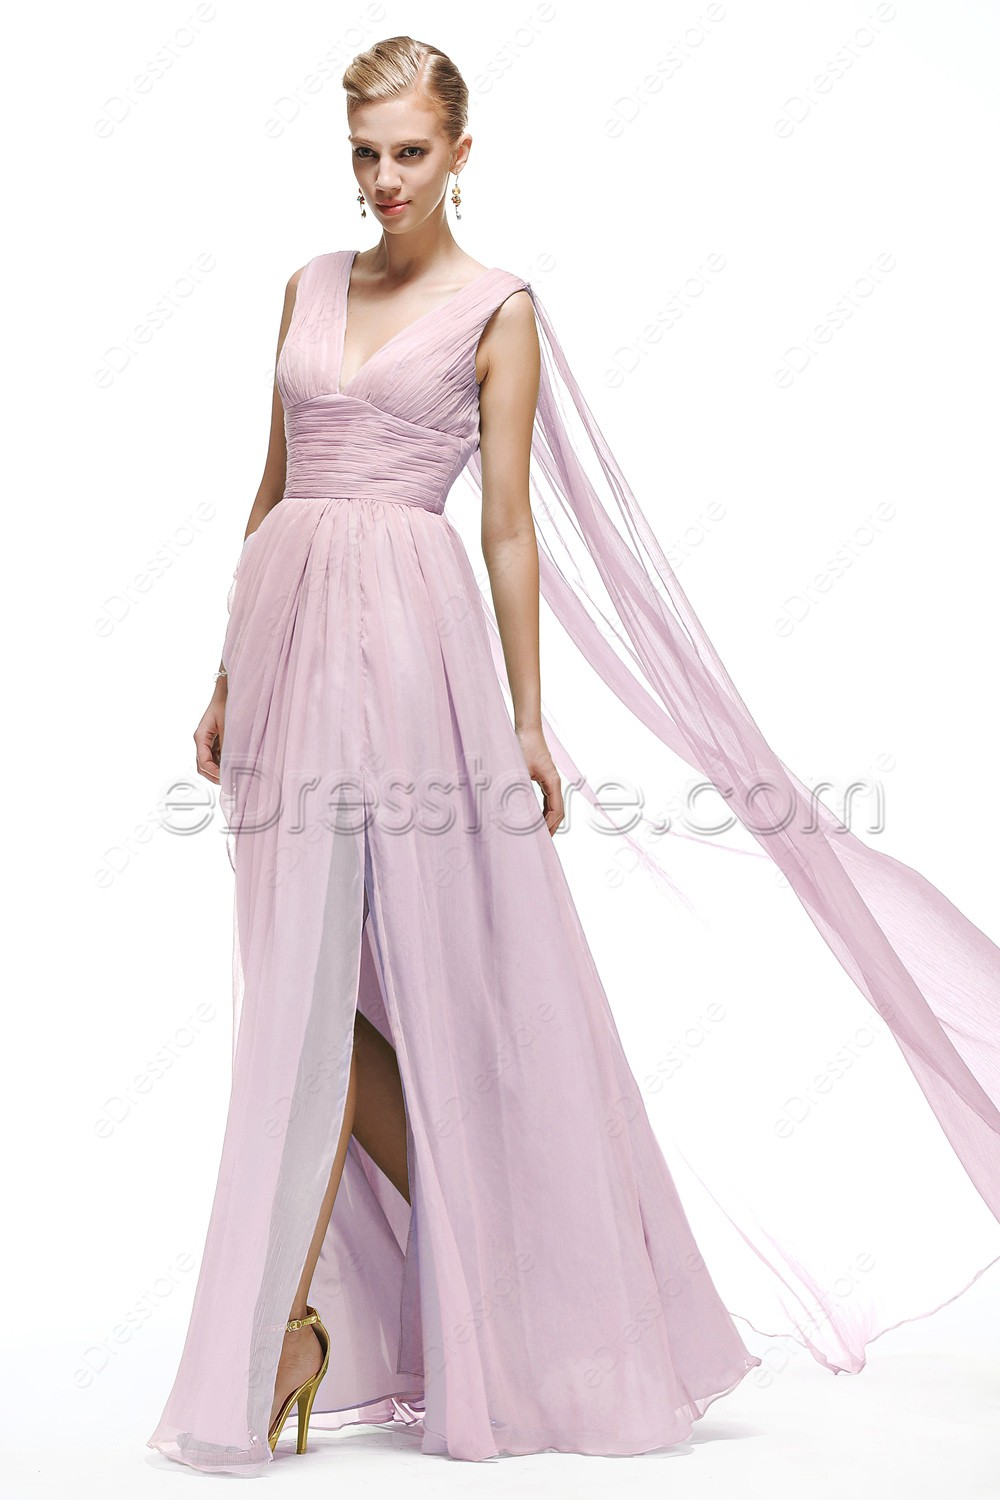 V neck pink bridesmaid dress maid of honor dresses this is a made to order item in order to get a better fit lease take your measurements around bust waist and hip and choose your size from our size ombrellifo Gallery